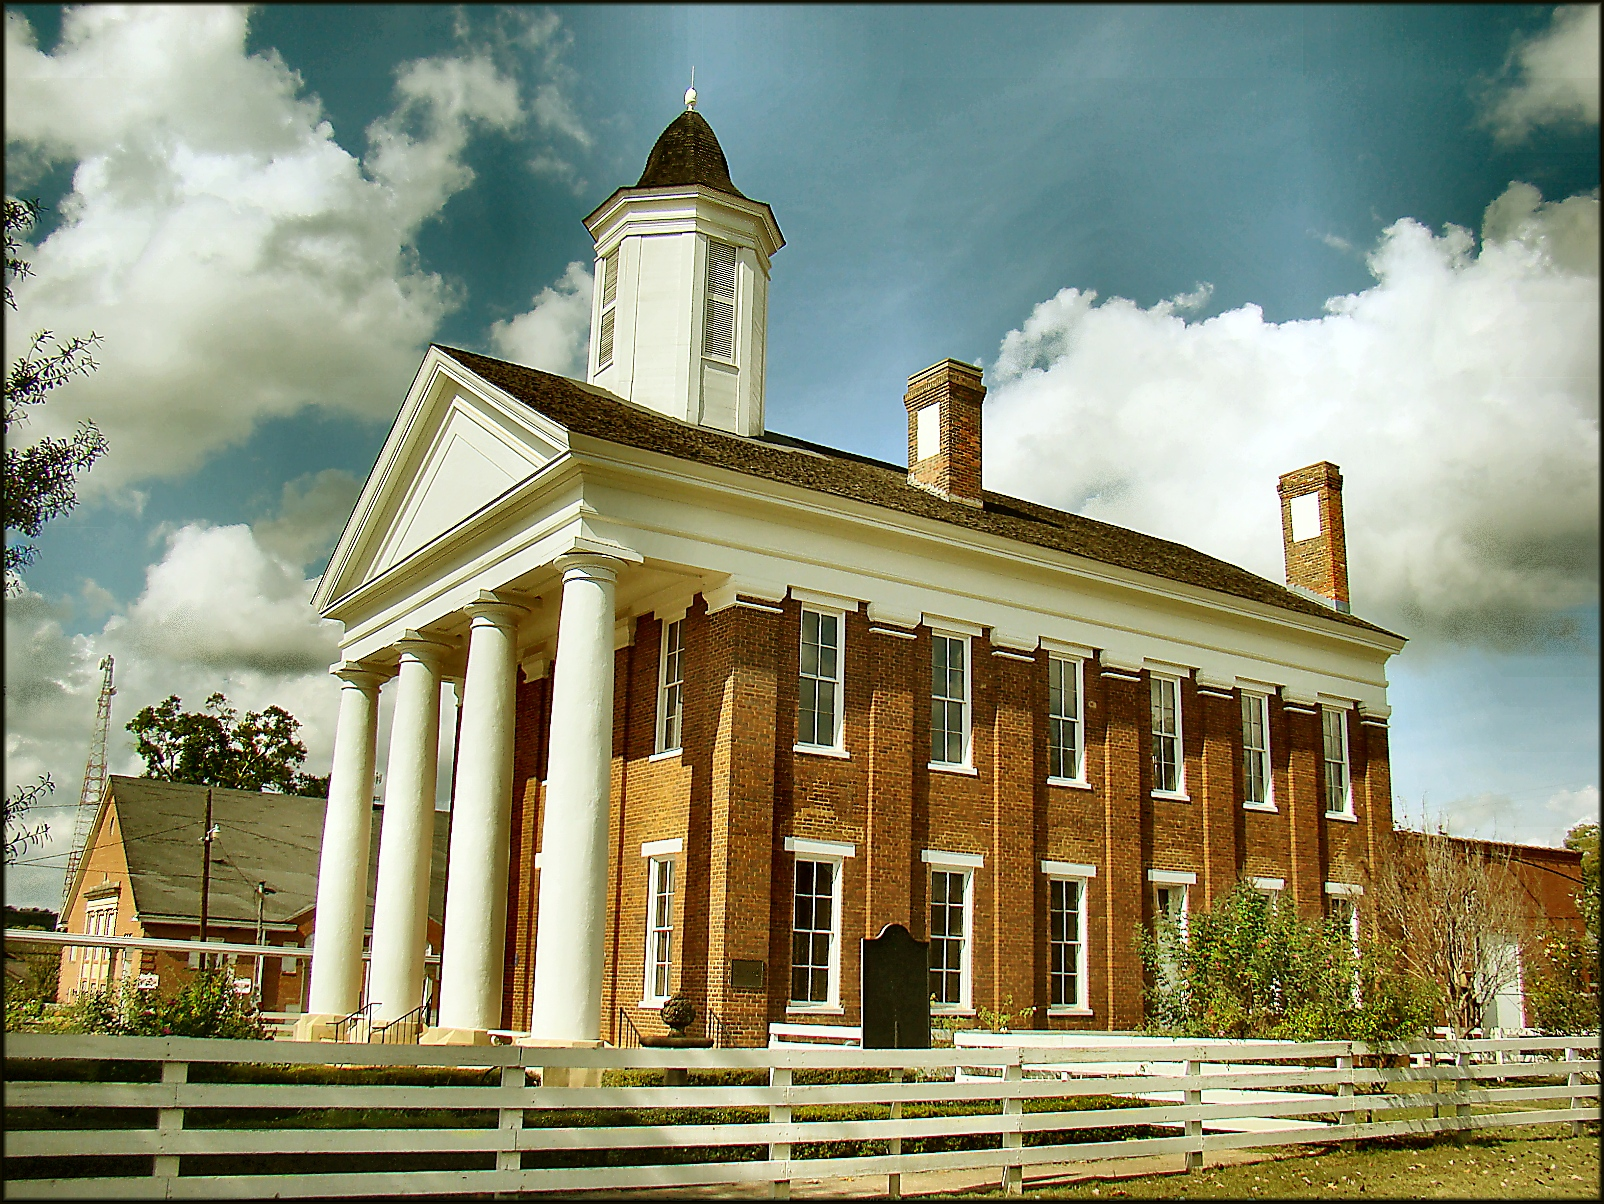 Picture of the Old University Building in Nacogdoches, Texas